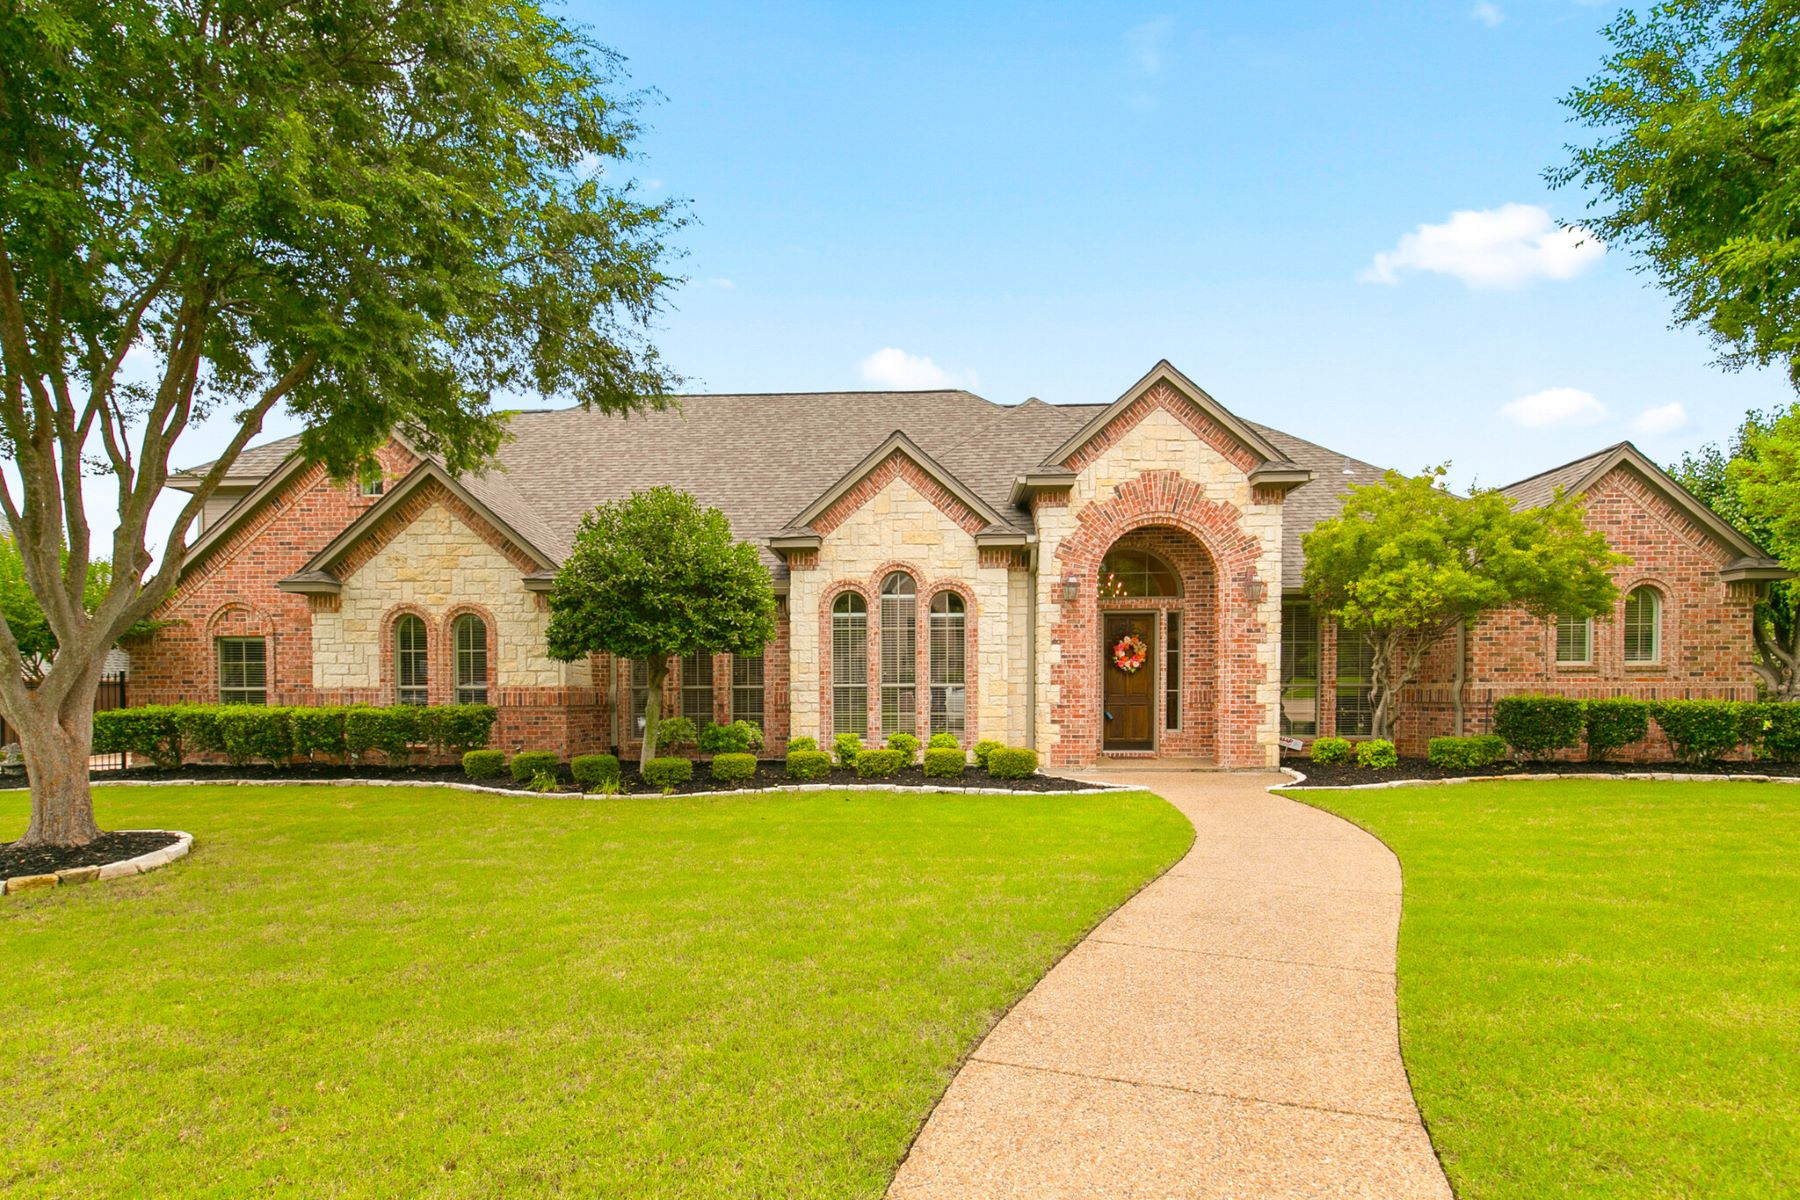 Single Family Homes for Sale at Meticulously Maintained Custom Home In Southlake 2701 York Court Southlake, Texas 76092 United States